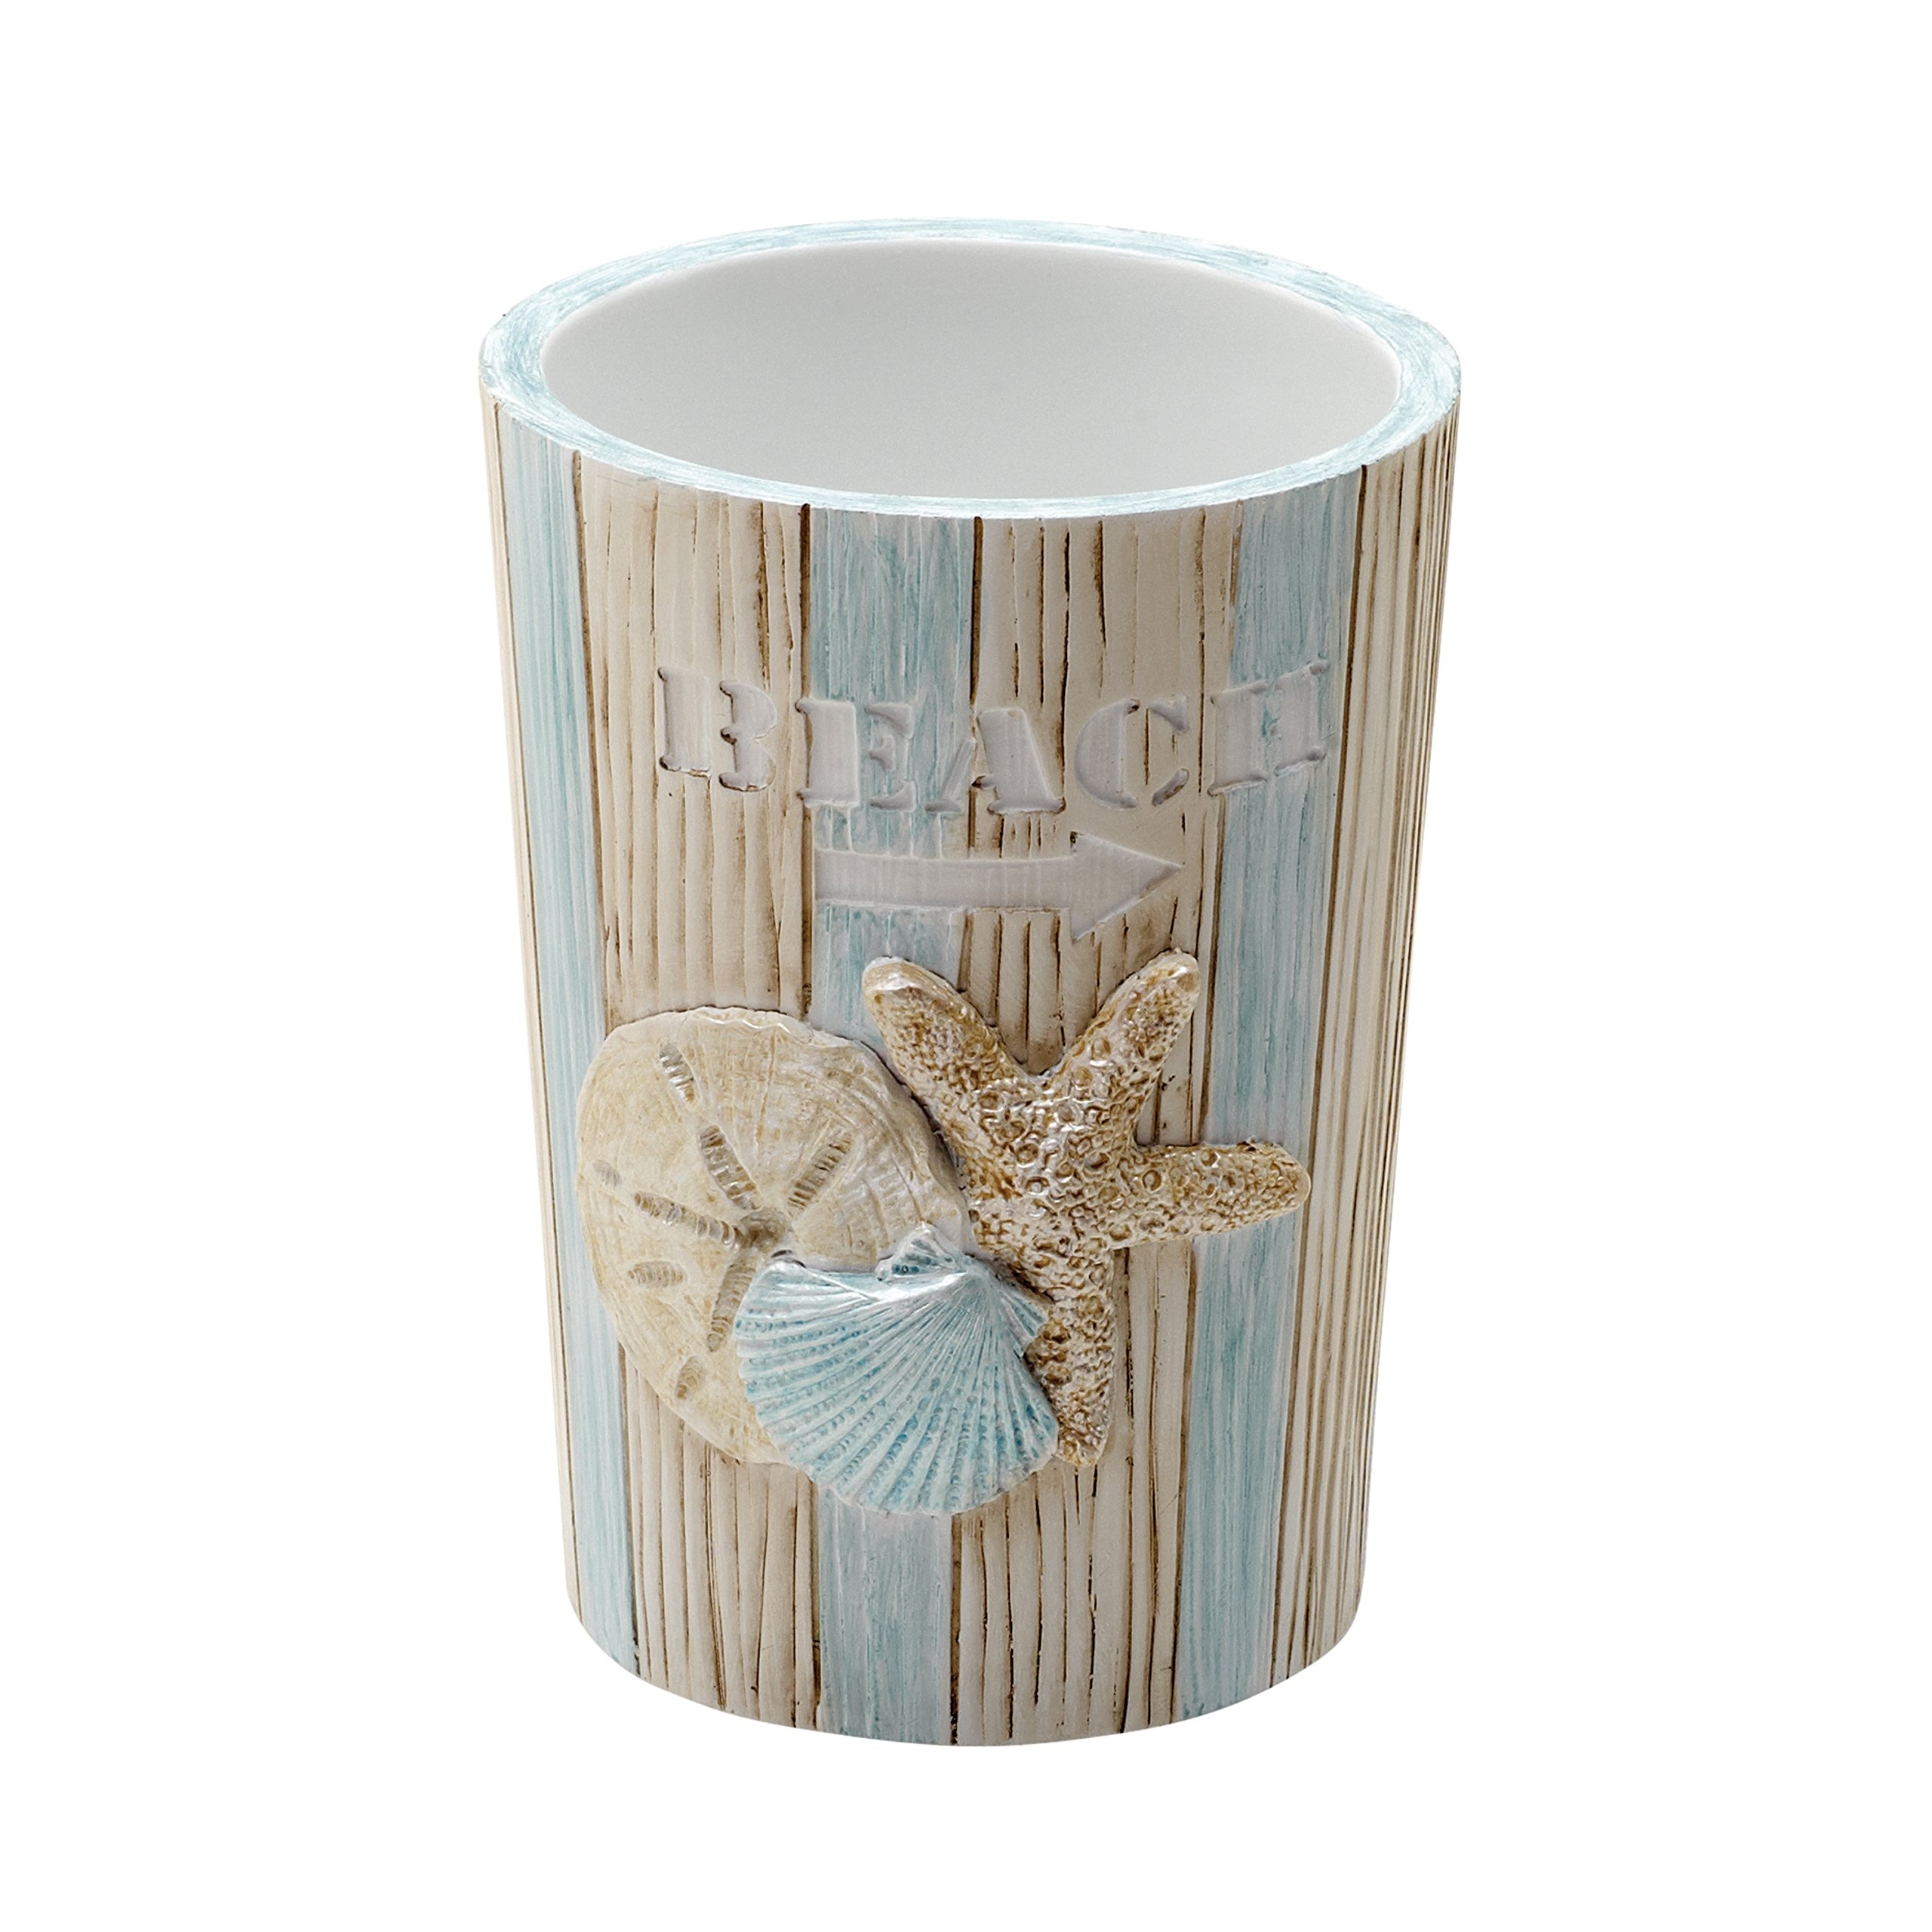 Zenna Home Seaside Serenity Tumbler, Teal/Ivory